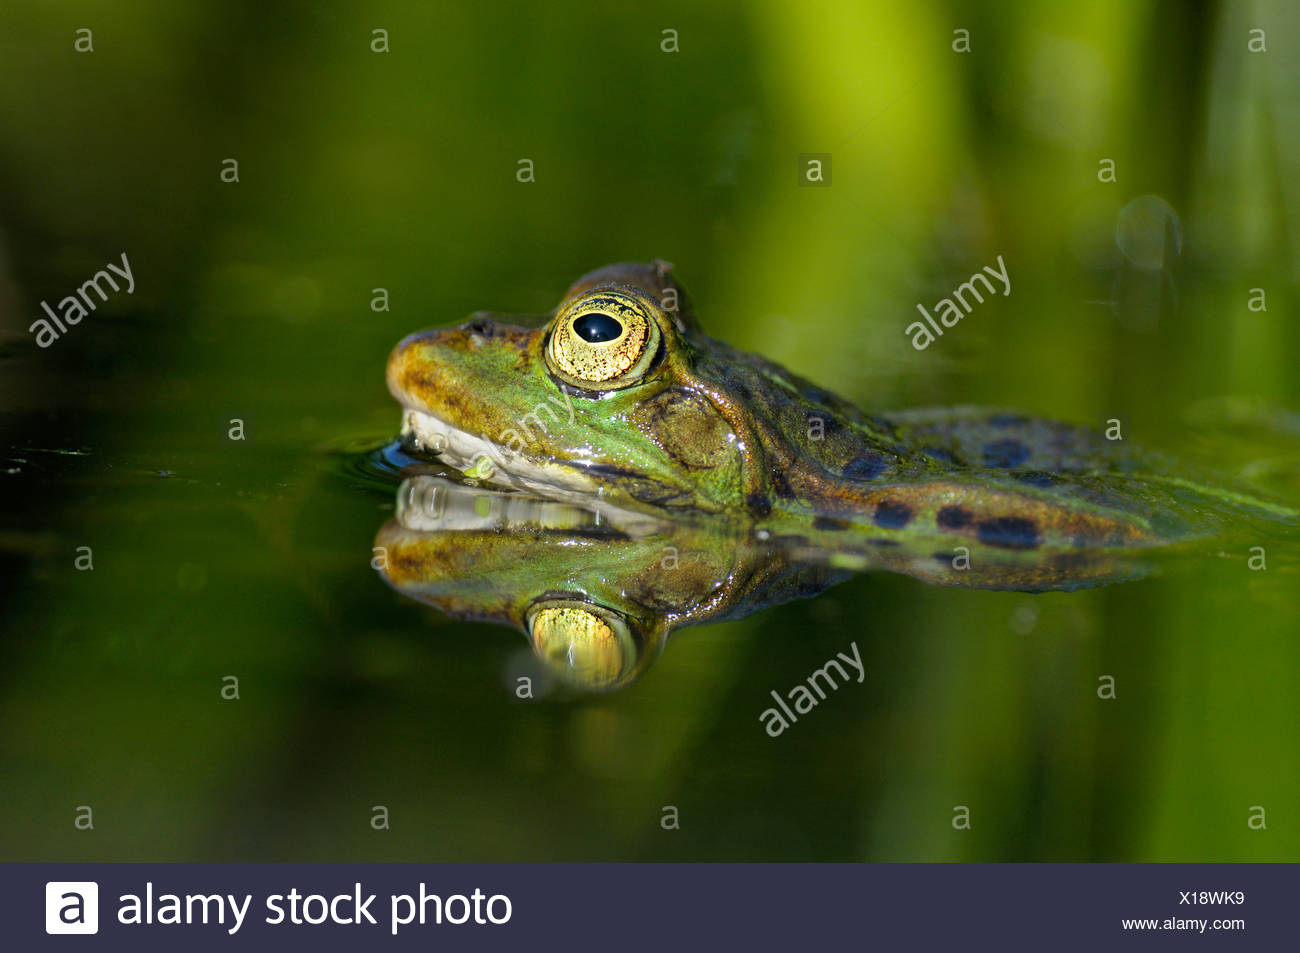 European edible frog, common edible frog (Rana kl. esculenta, Rana esculenta), male during the spawning season, Germany, North Rhine-Westphalia - Stock Image